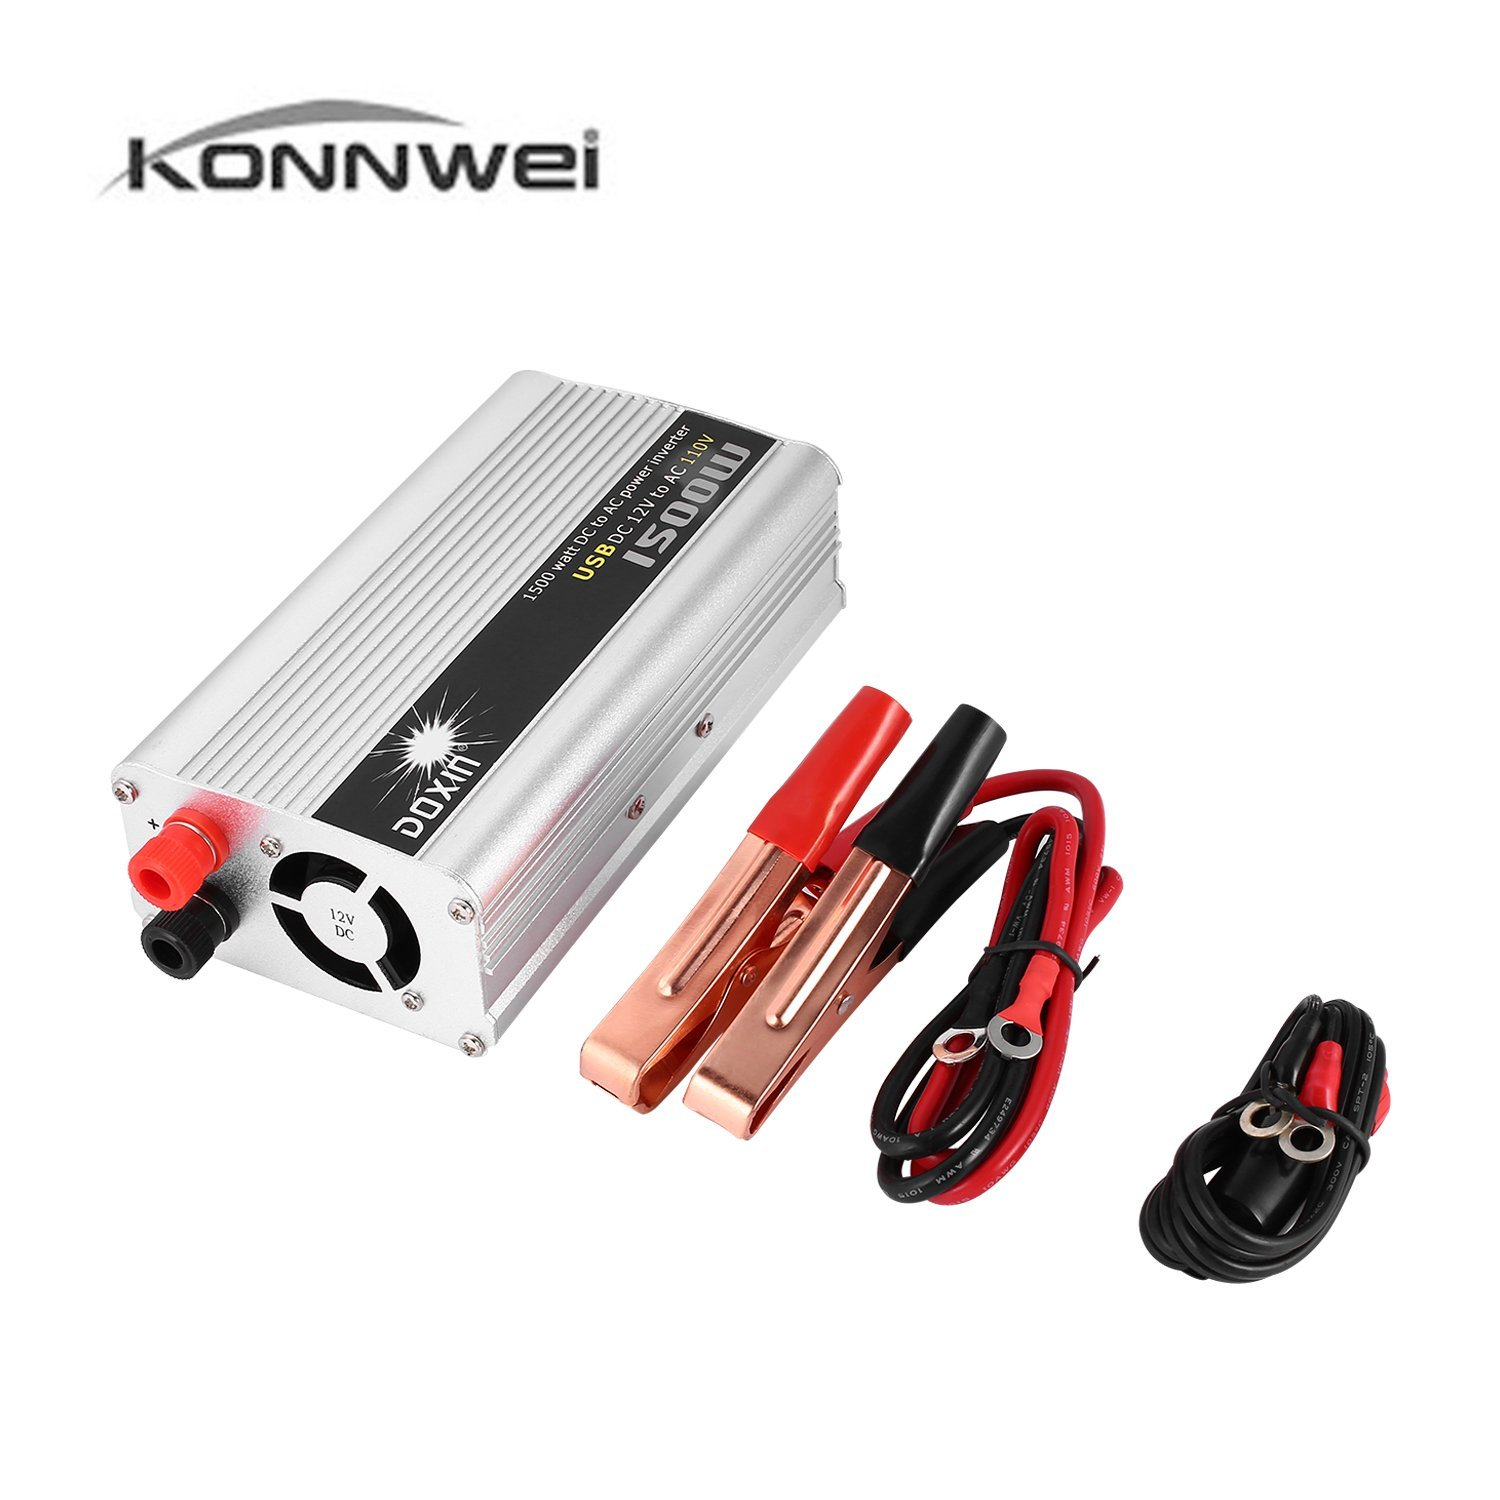 Cheap Dc Portable Power, find Dc Portable Power deals on line at